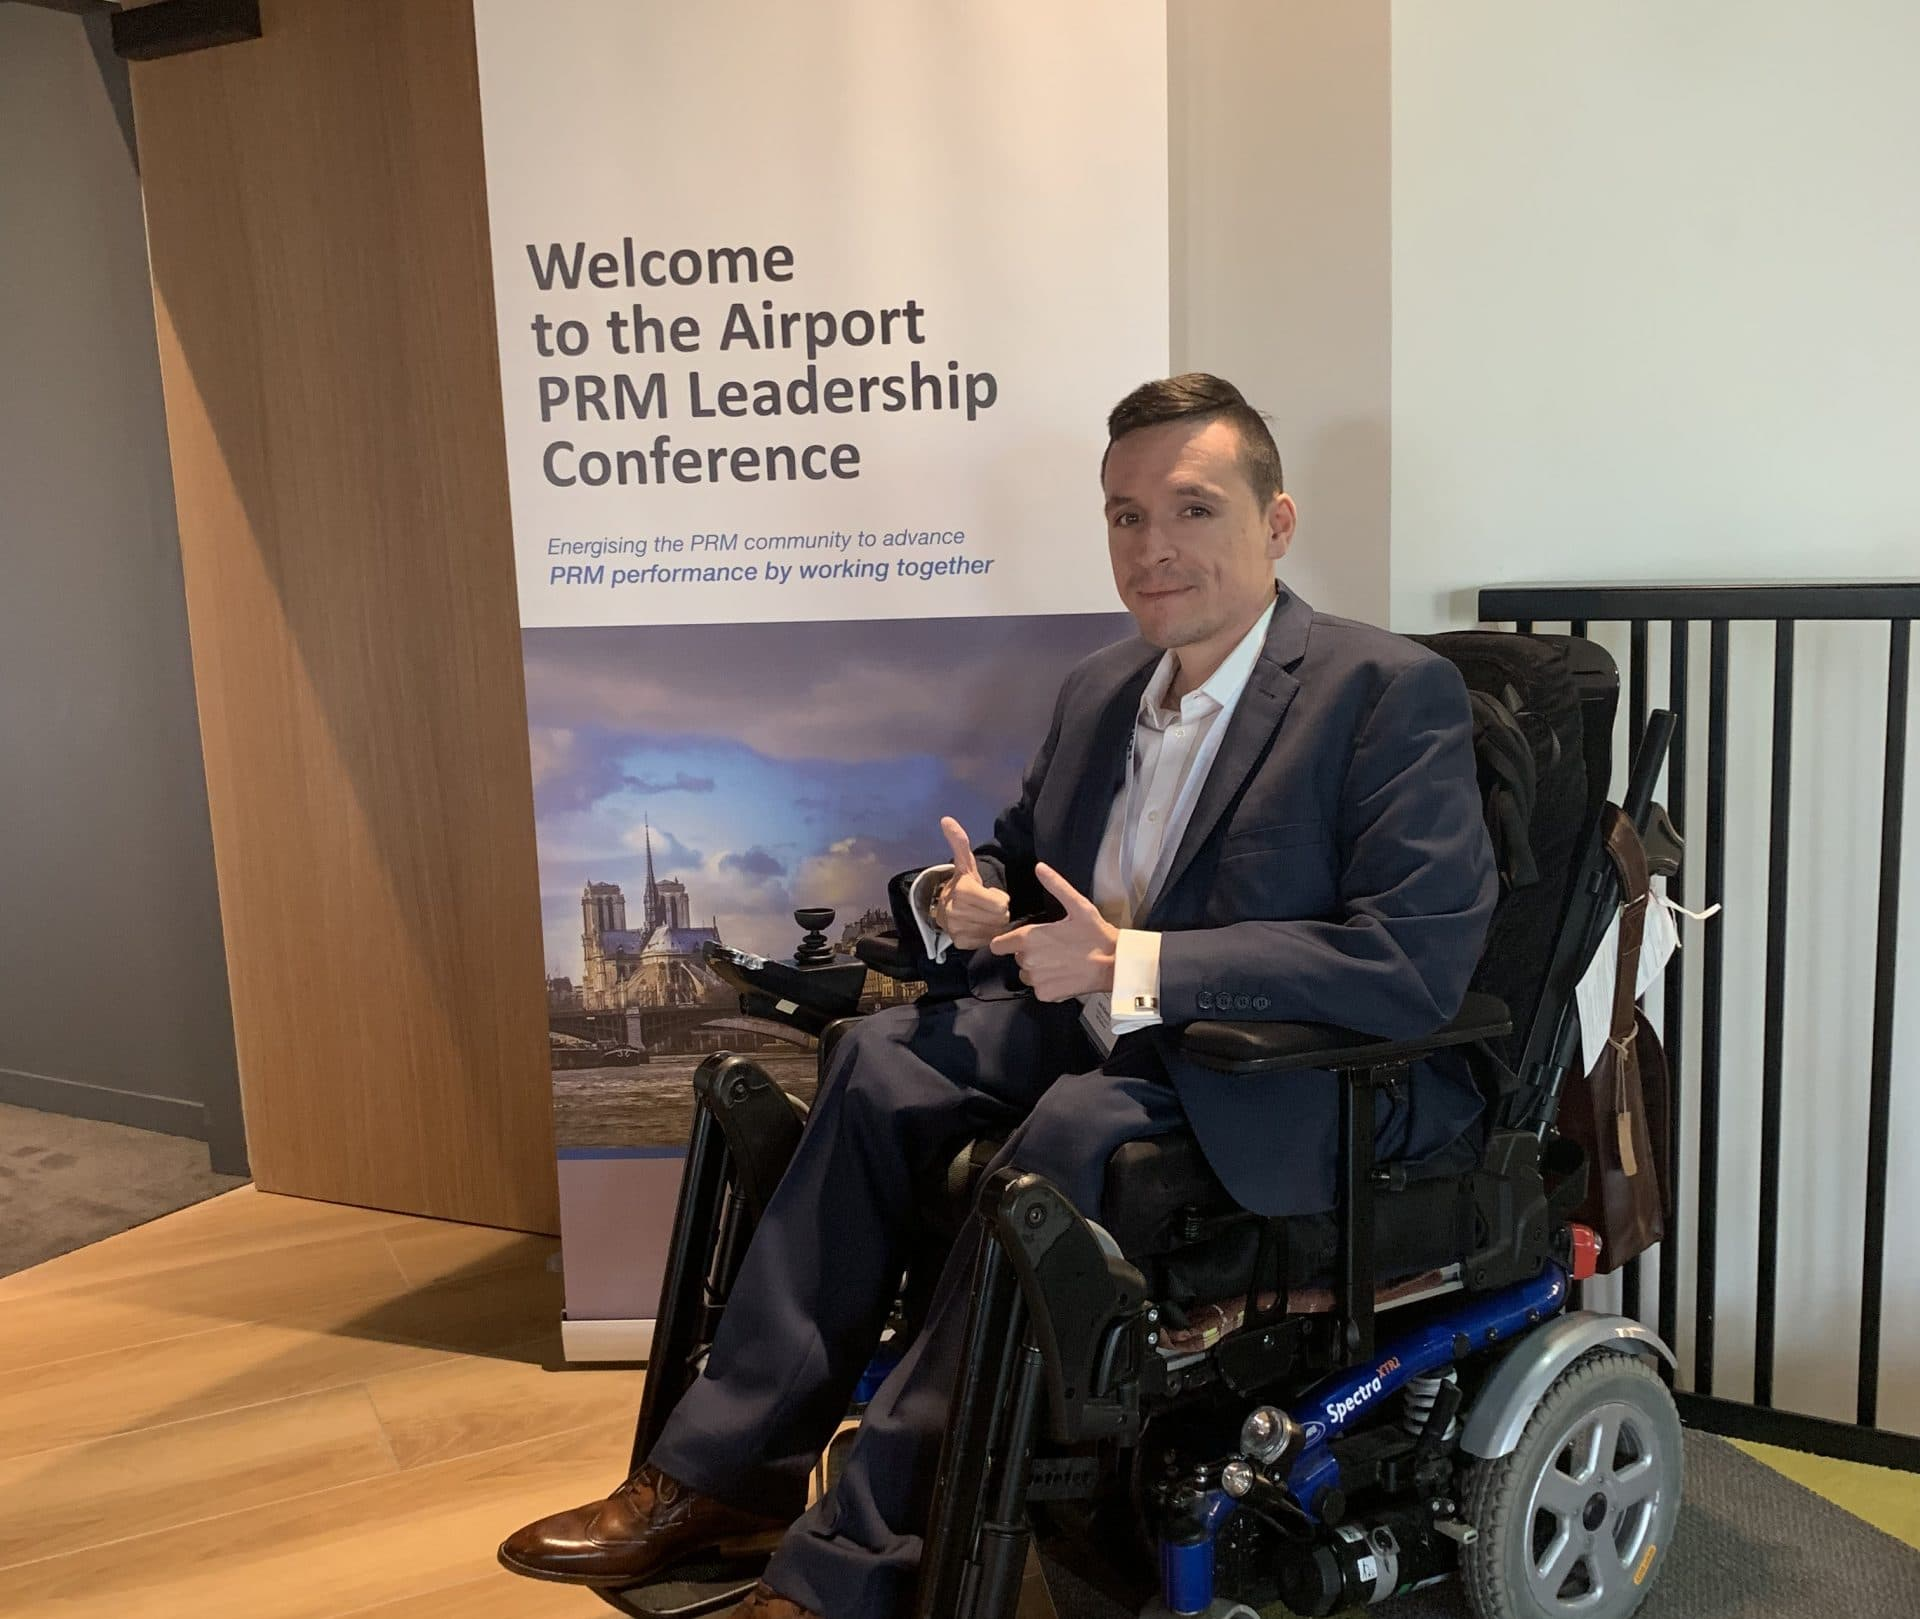 Josh in his wheelchair with his thumbs ups. Behind in him is a poster which says 'welcome to the airport PRM leadership conference